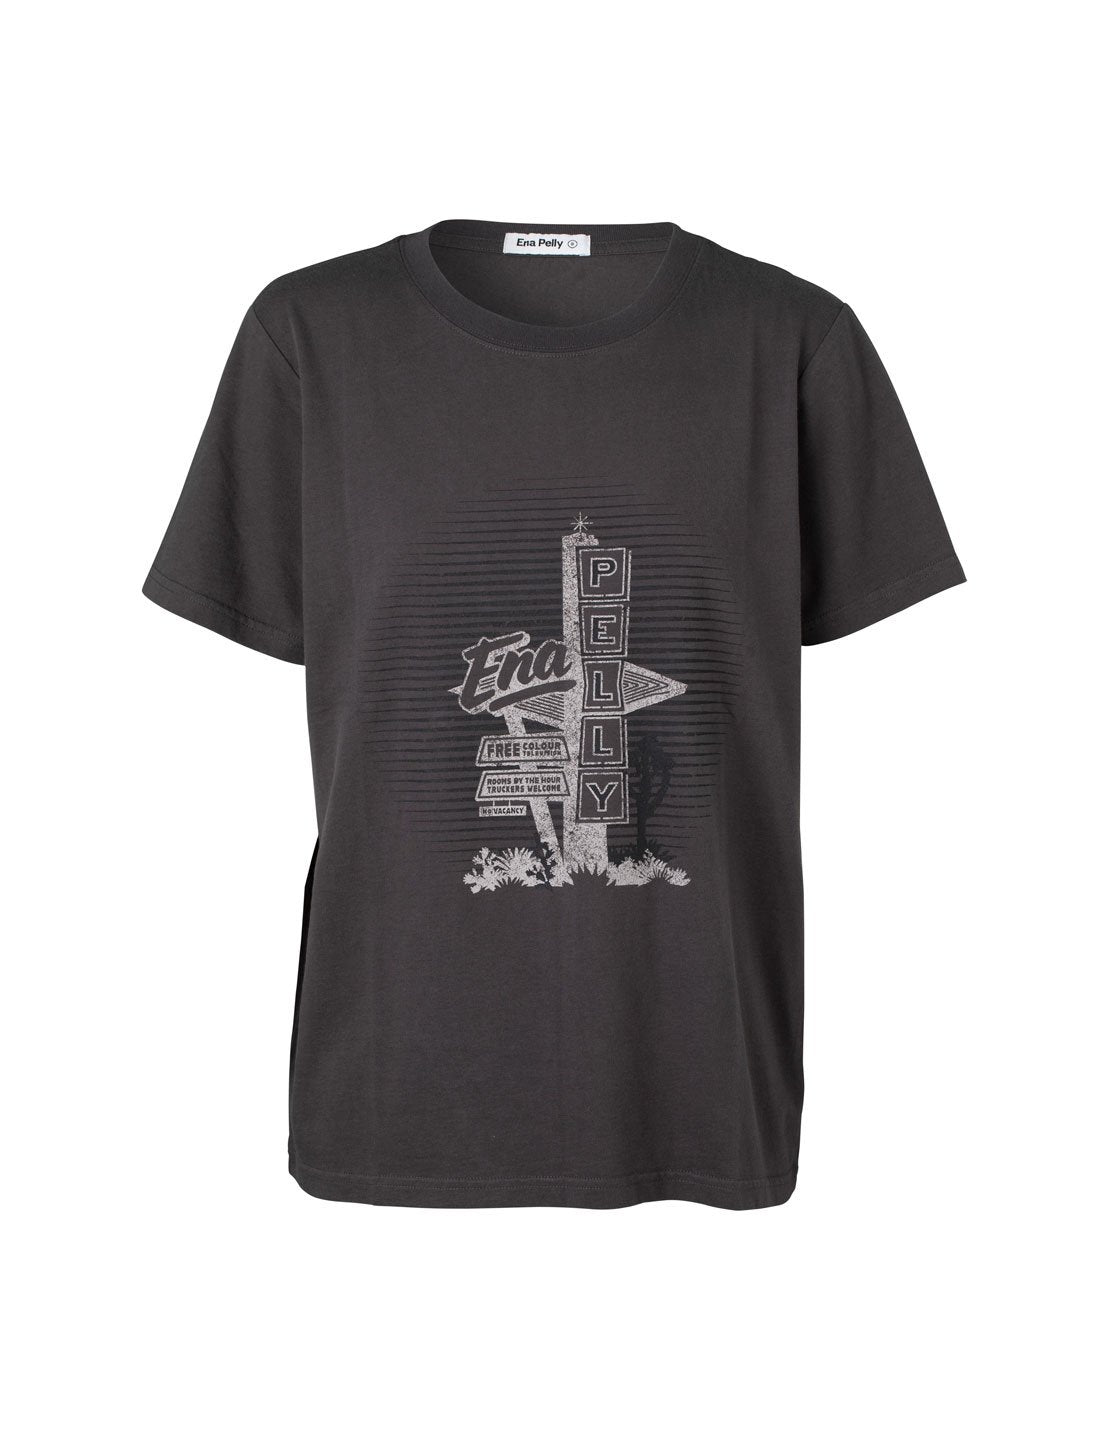 Hotel California Graphic T-Shirt